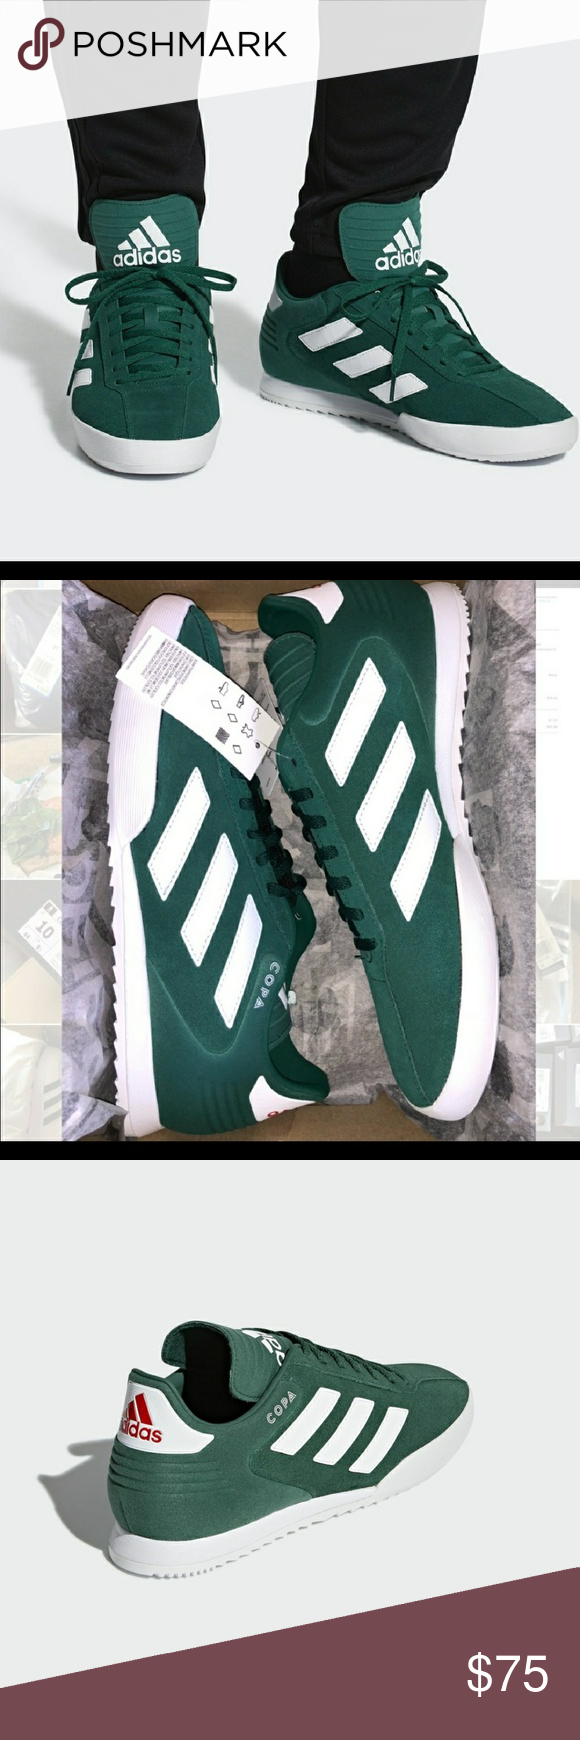 outlet store 4399e 886ce Adidas Copa Super Shoes B37086 COPA SUPER SHOES Clean and classic, these  shoes push soccer style off the field with a synthetic and leather upper  featuring ...